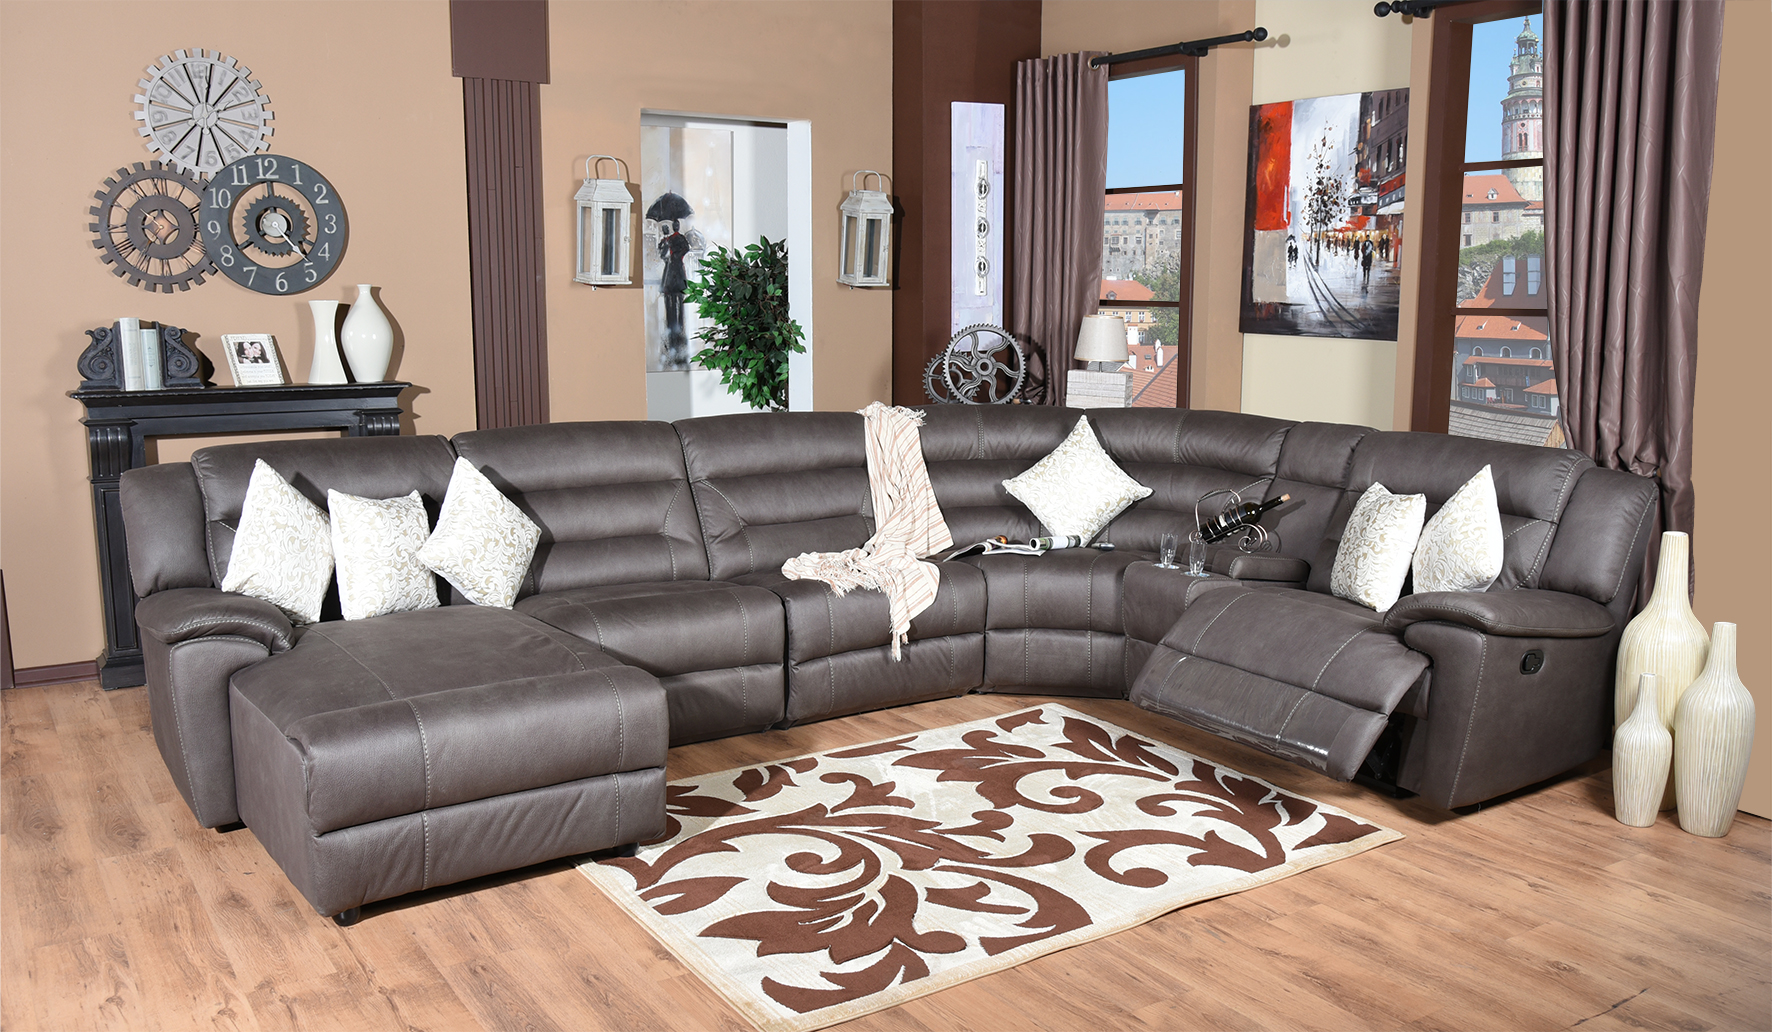 Mirage recliner corner suite corner couch corner sofa for Cheap designer furniture johannesburg